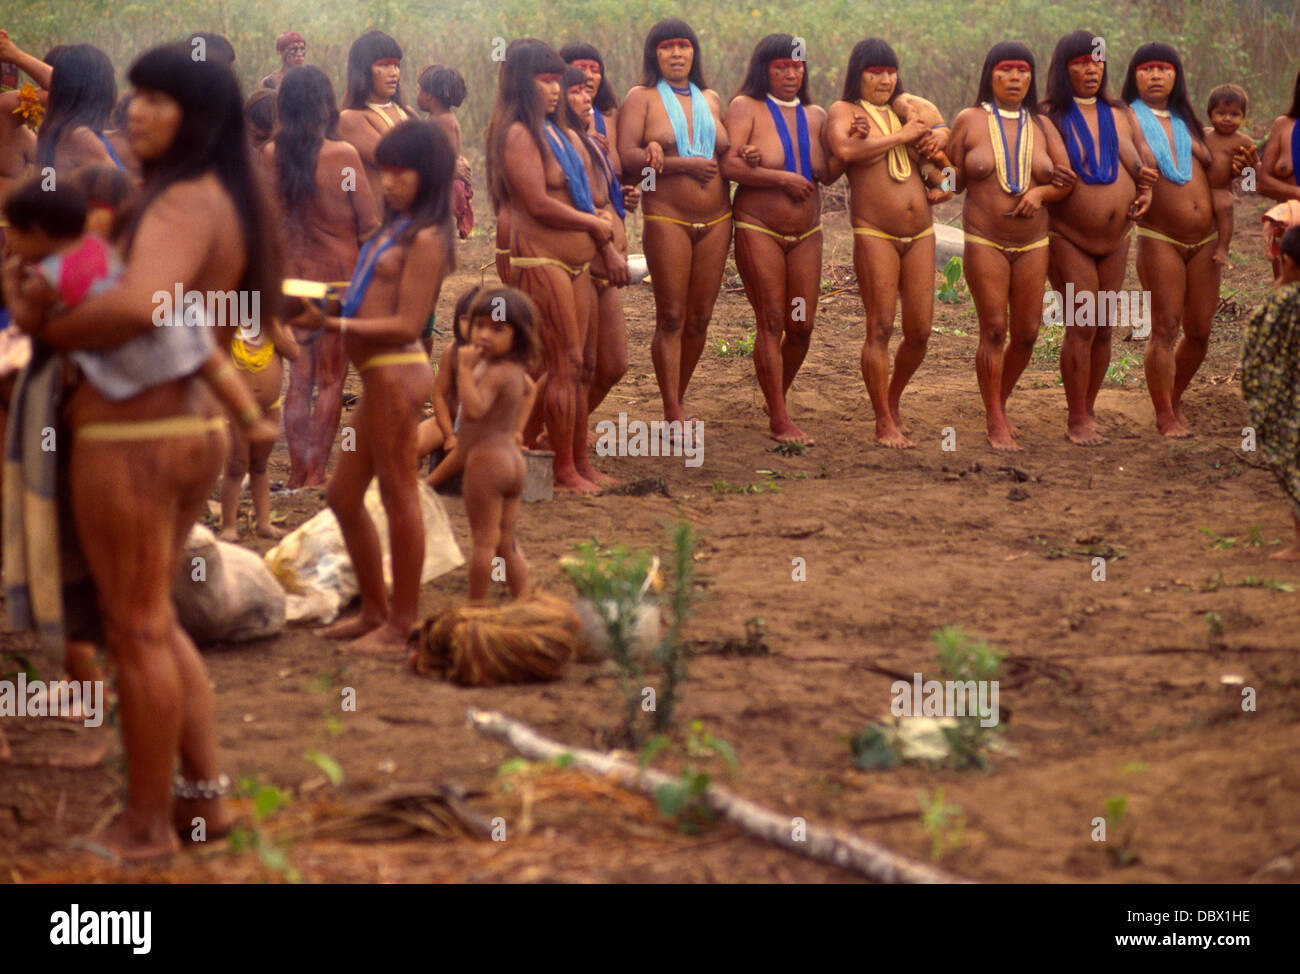 xingu women Waurá or Wauja or Uaurás Indigenous People, in the region near the Upper  Xingu River. Amazon rain forest, Brazil. Women dancing